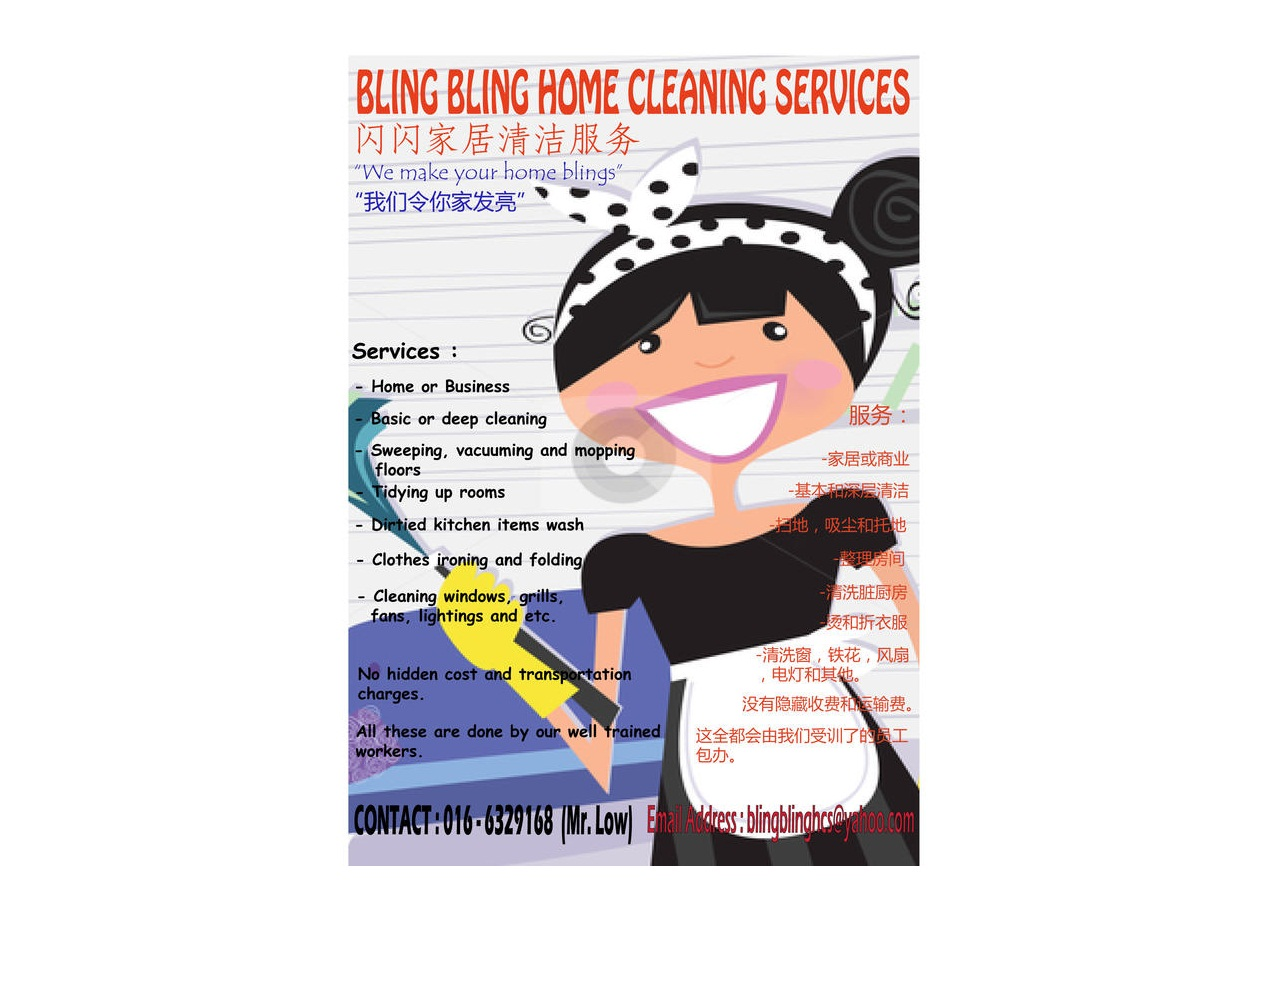 sample cleaning flyers sample cleaning flyers makemoney alex tk